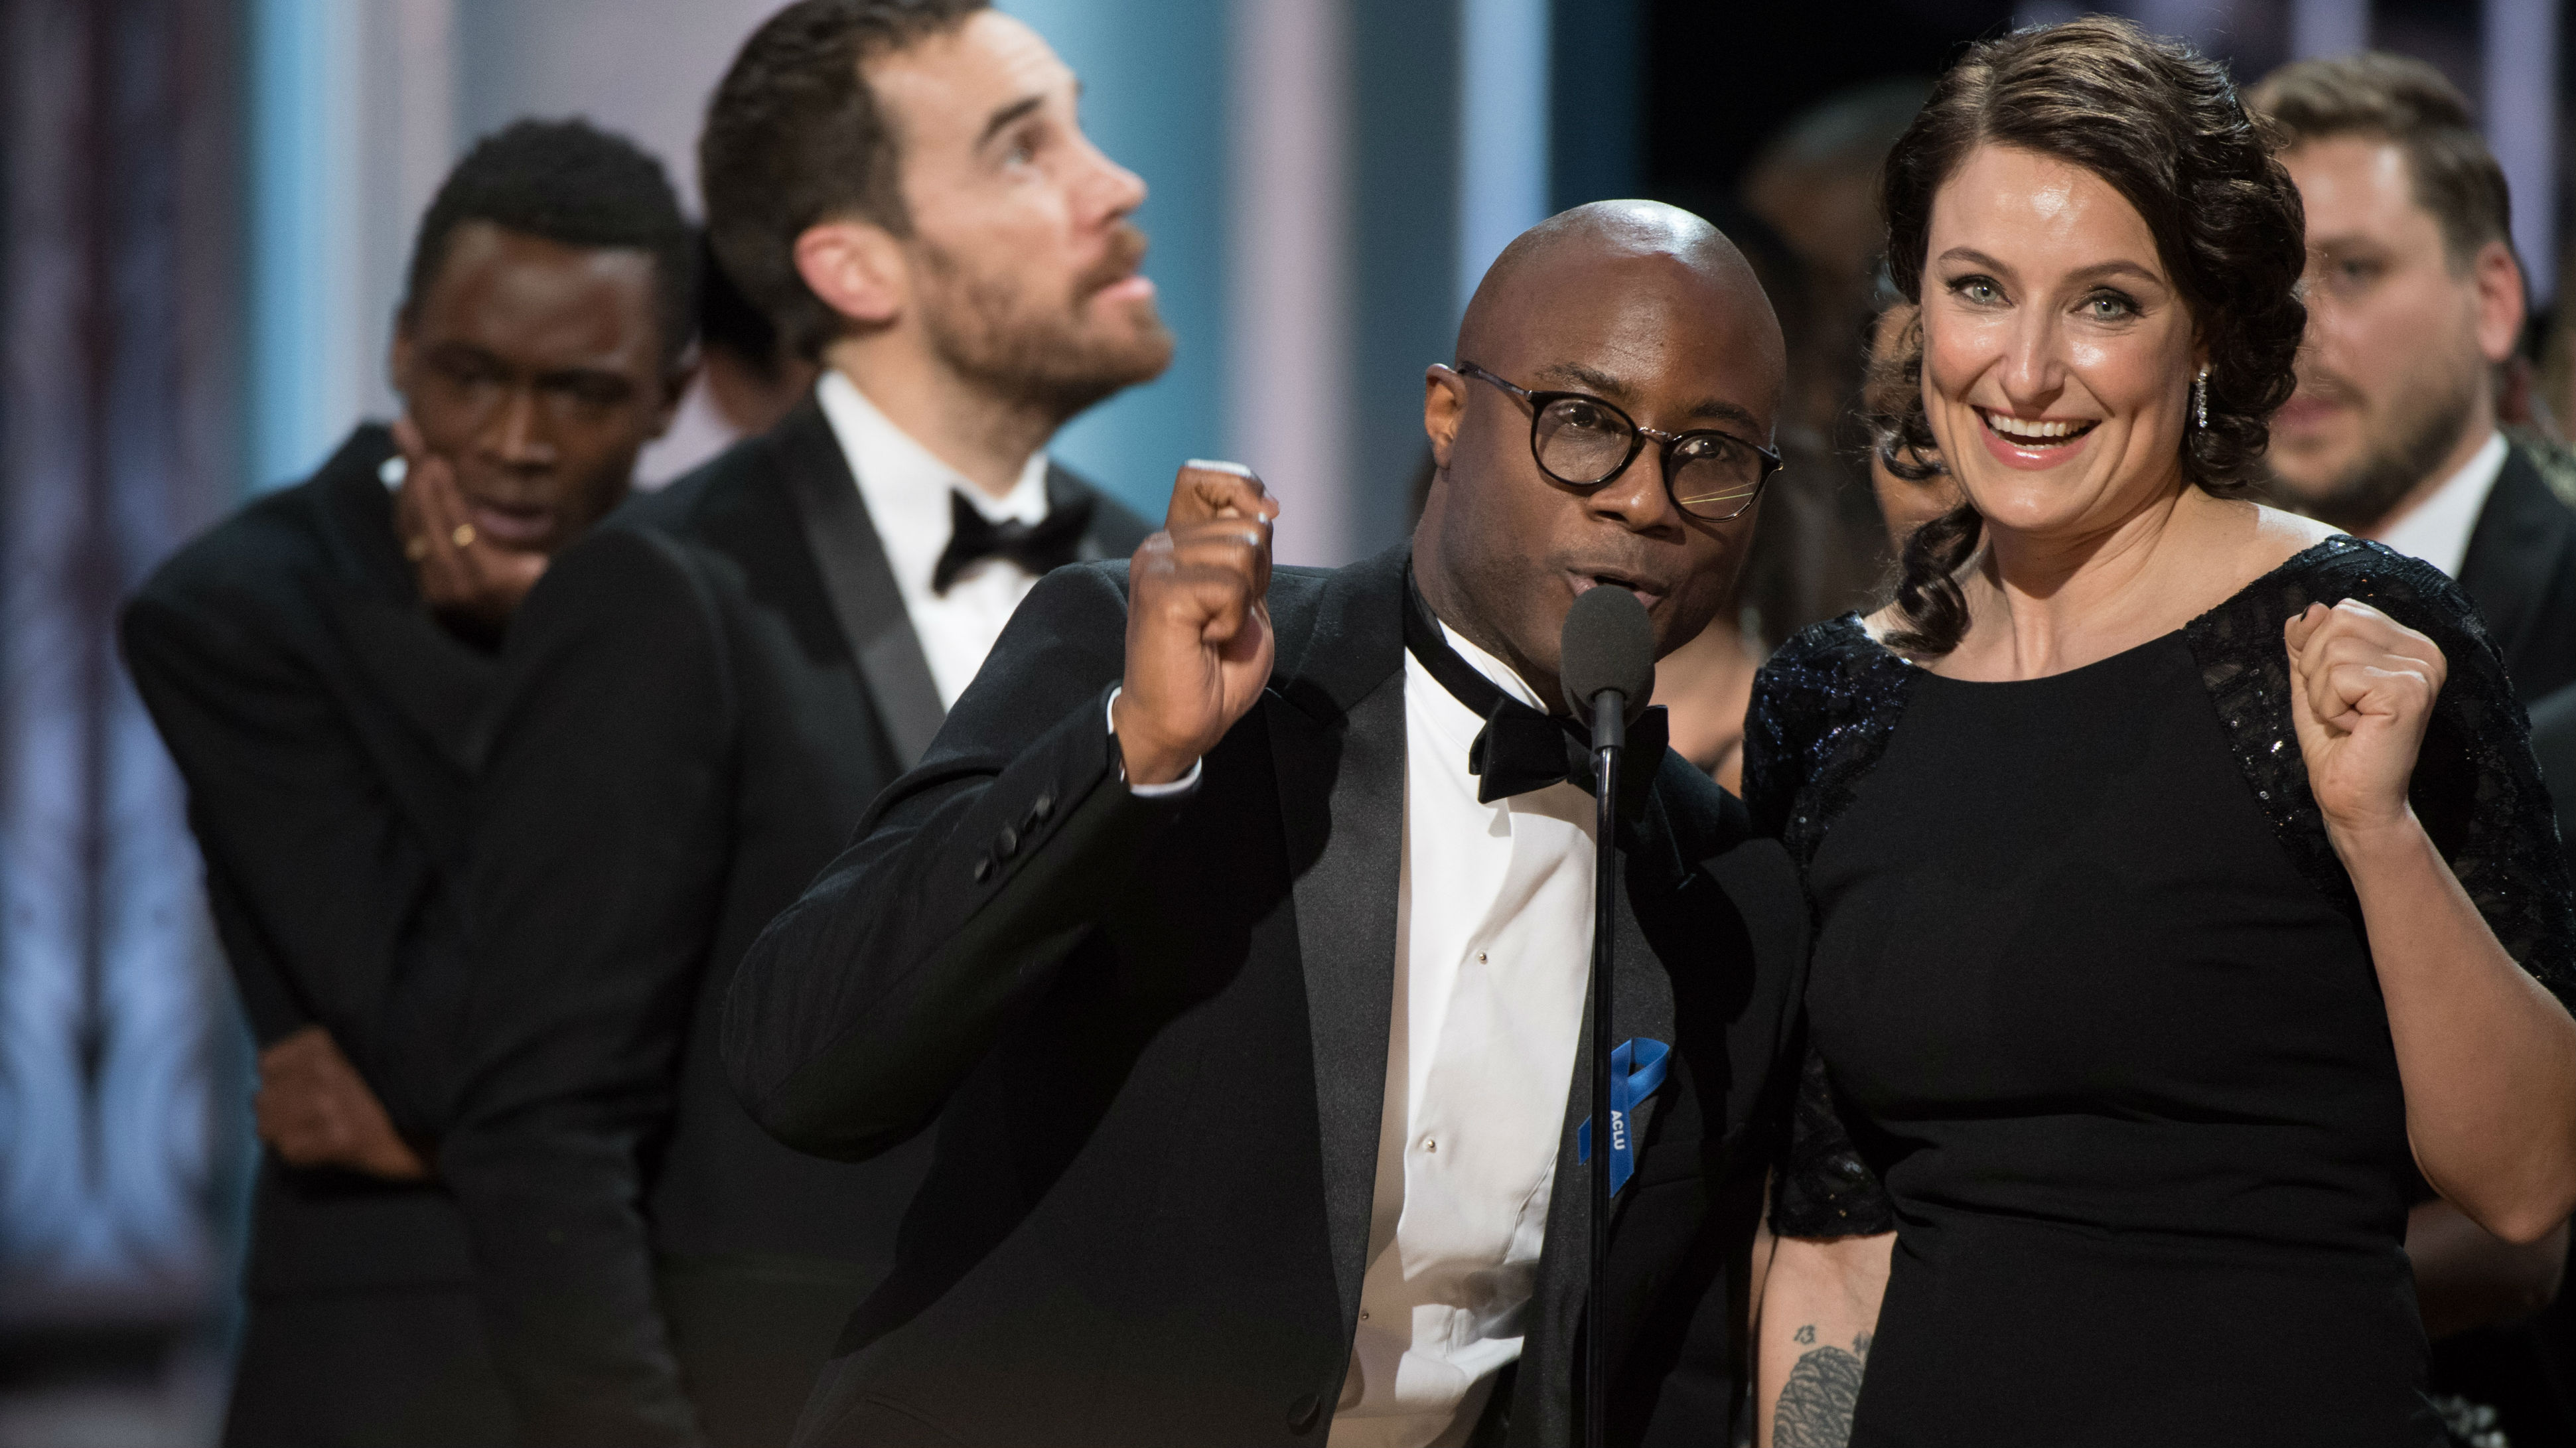 In a shocker, 'Moonlight' wins Best Picture at surprising Oscar ceremonies